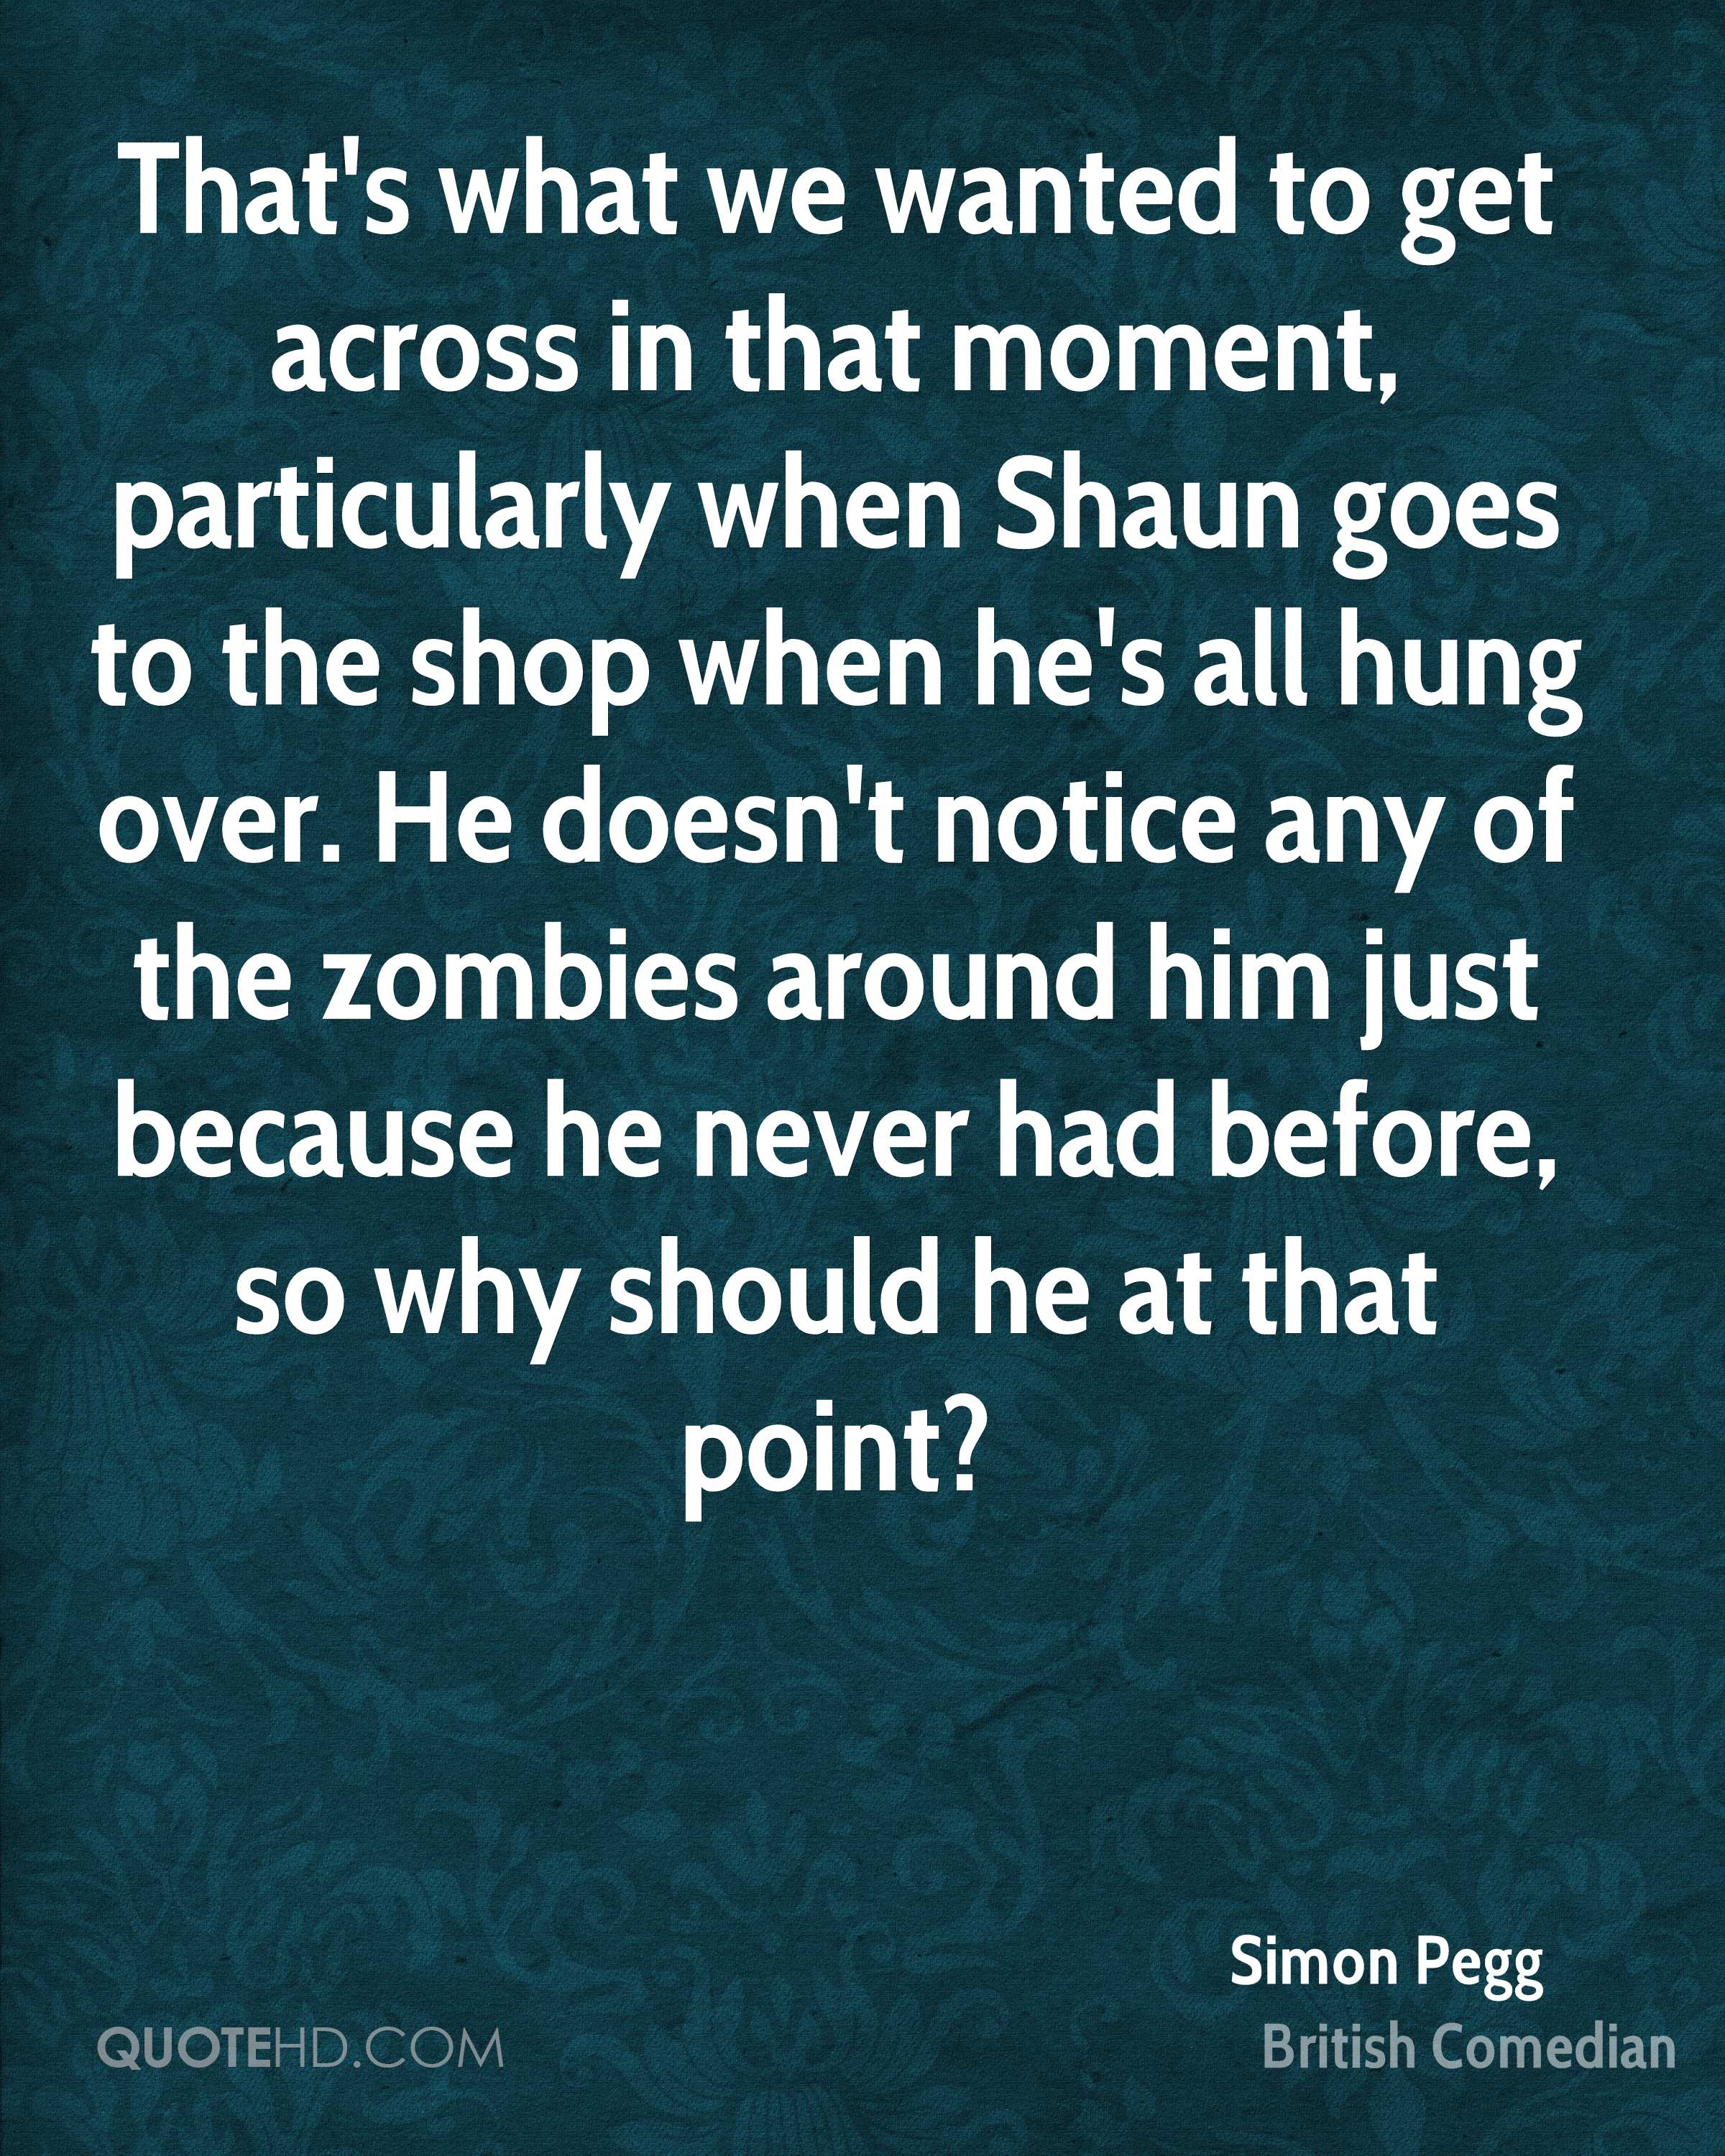 That's what we wanted to get across in that moment, particularly when Shaun goes to the shop when he's all hung over. He doesn't notice any of the zombies around him just because he never had before, so why should he at that point?